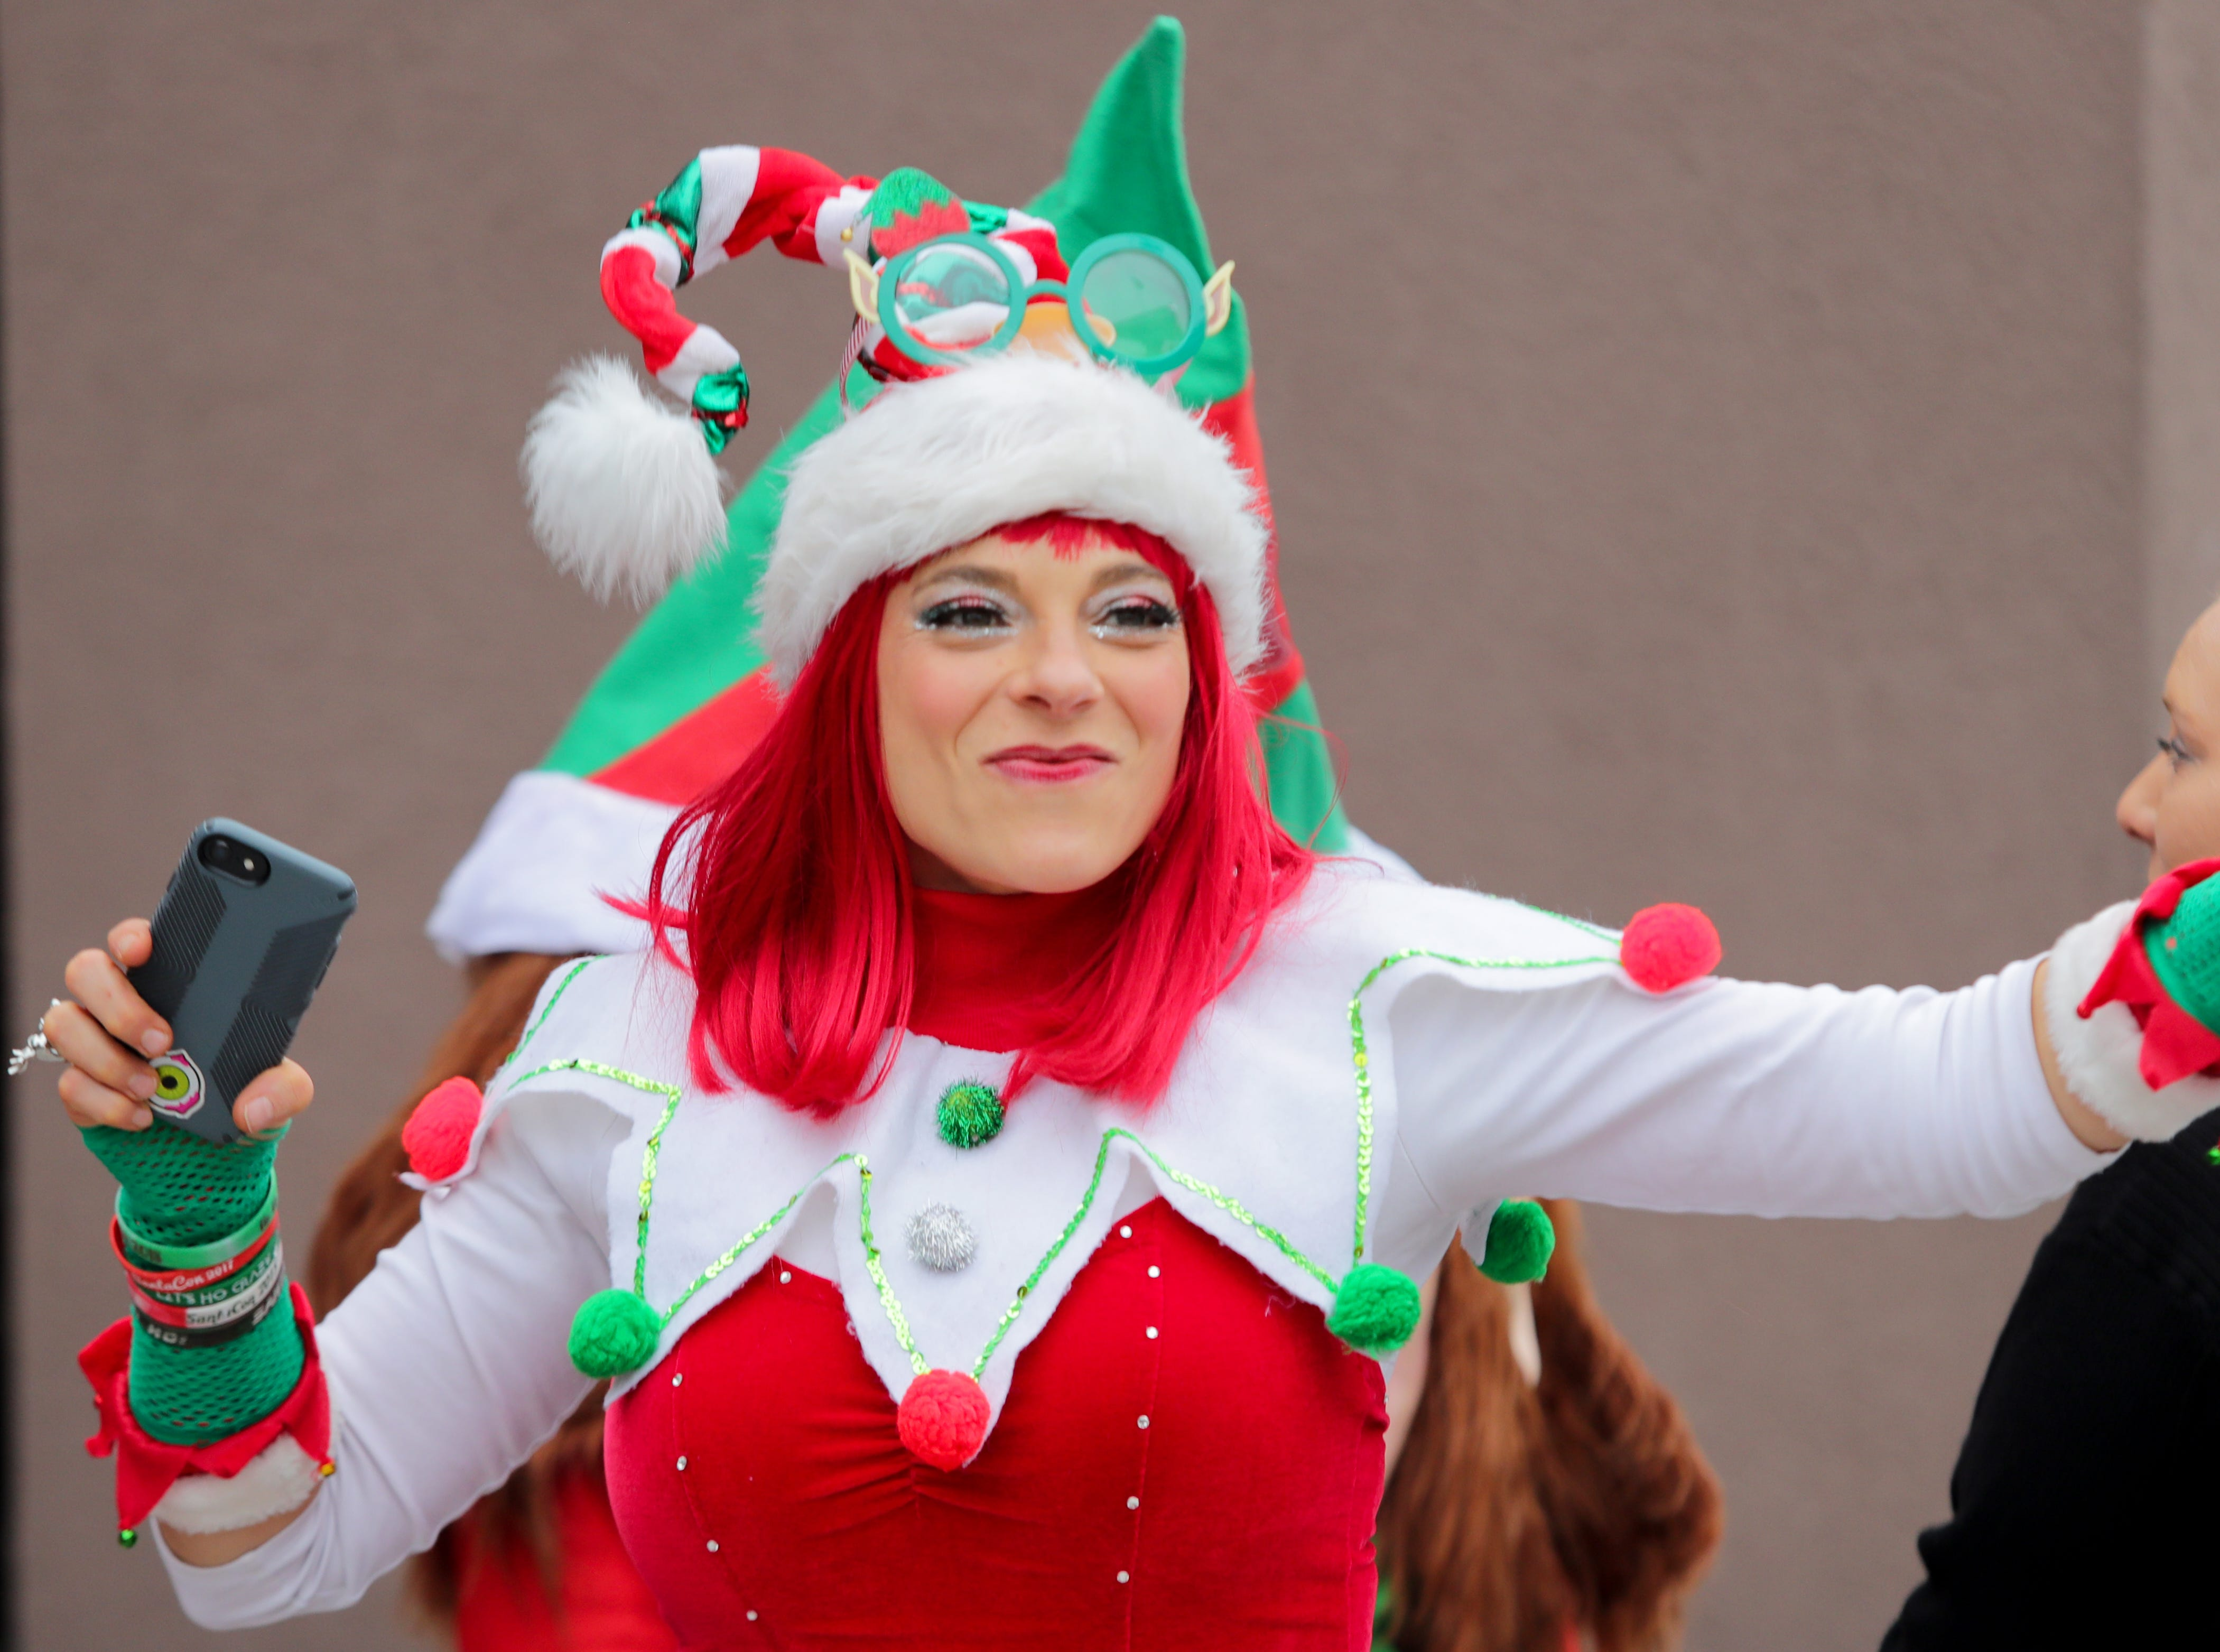 Jenna Ankenbrand, one of Santa's workers, pumps up the crowd at 8UP, SantaCon's first location of the day,    Dec. 8, 2018